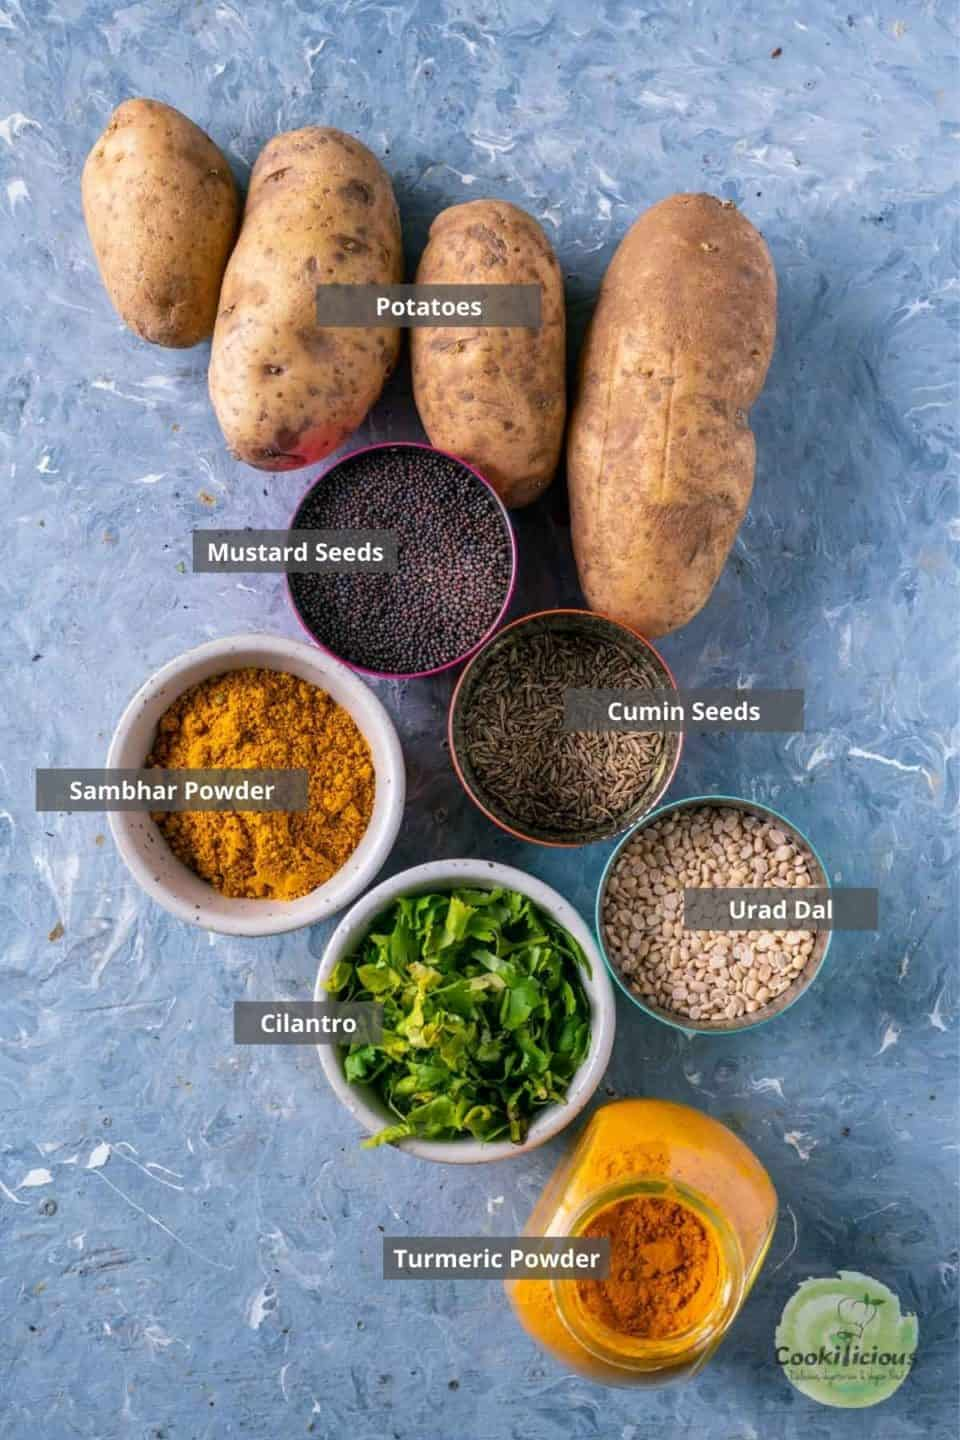 all the ingredients needed to make South Indian Spicy Potato Curry placed on a table with labels on them